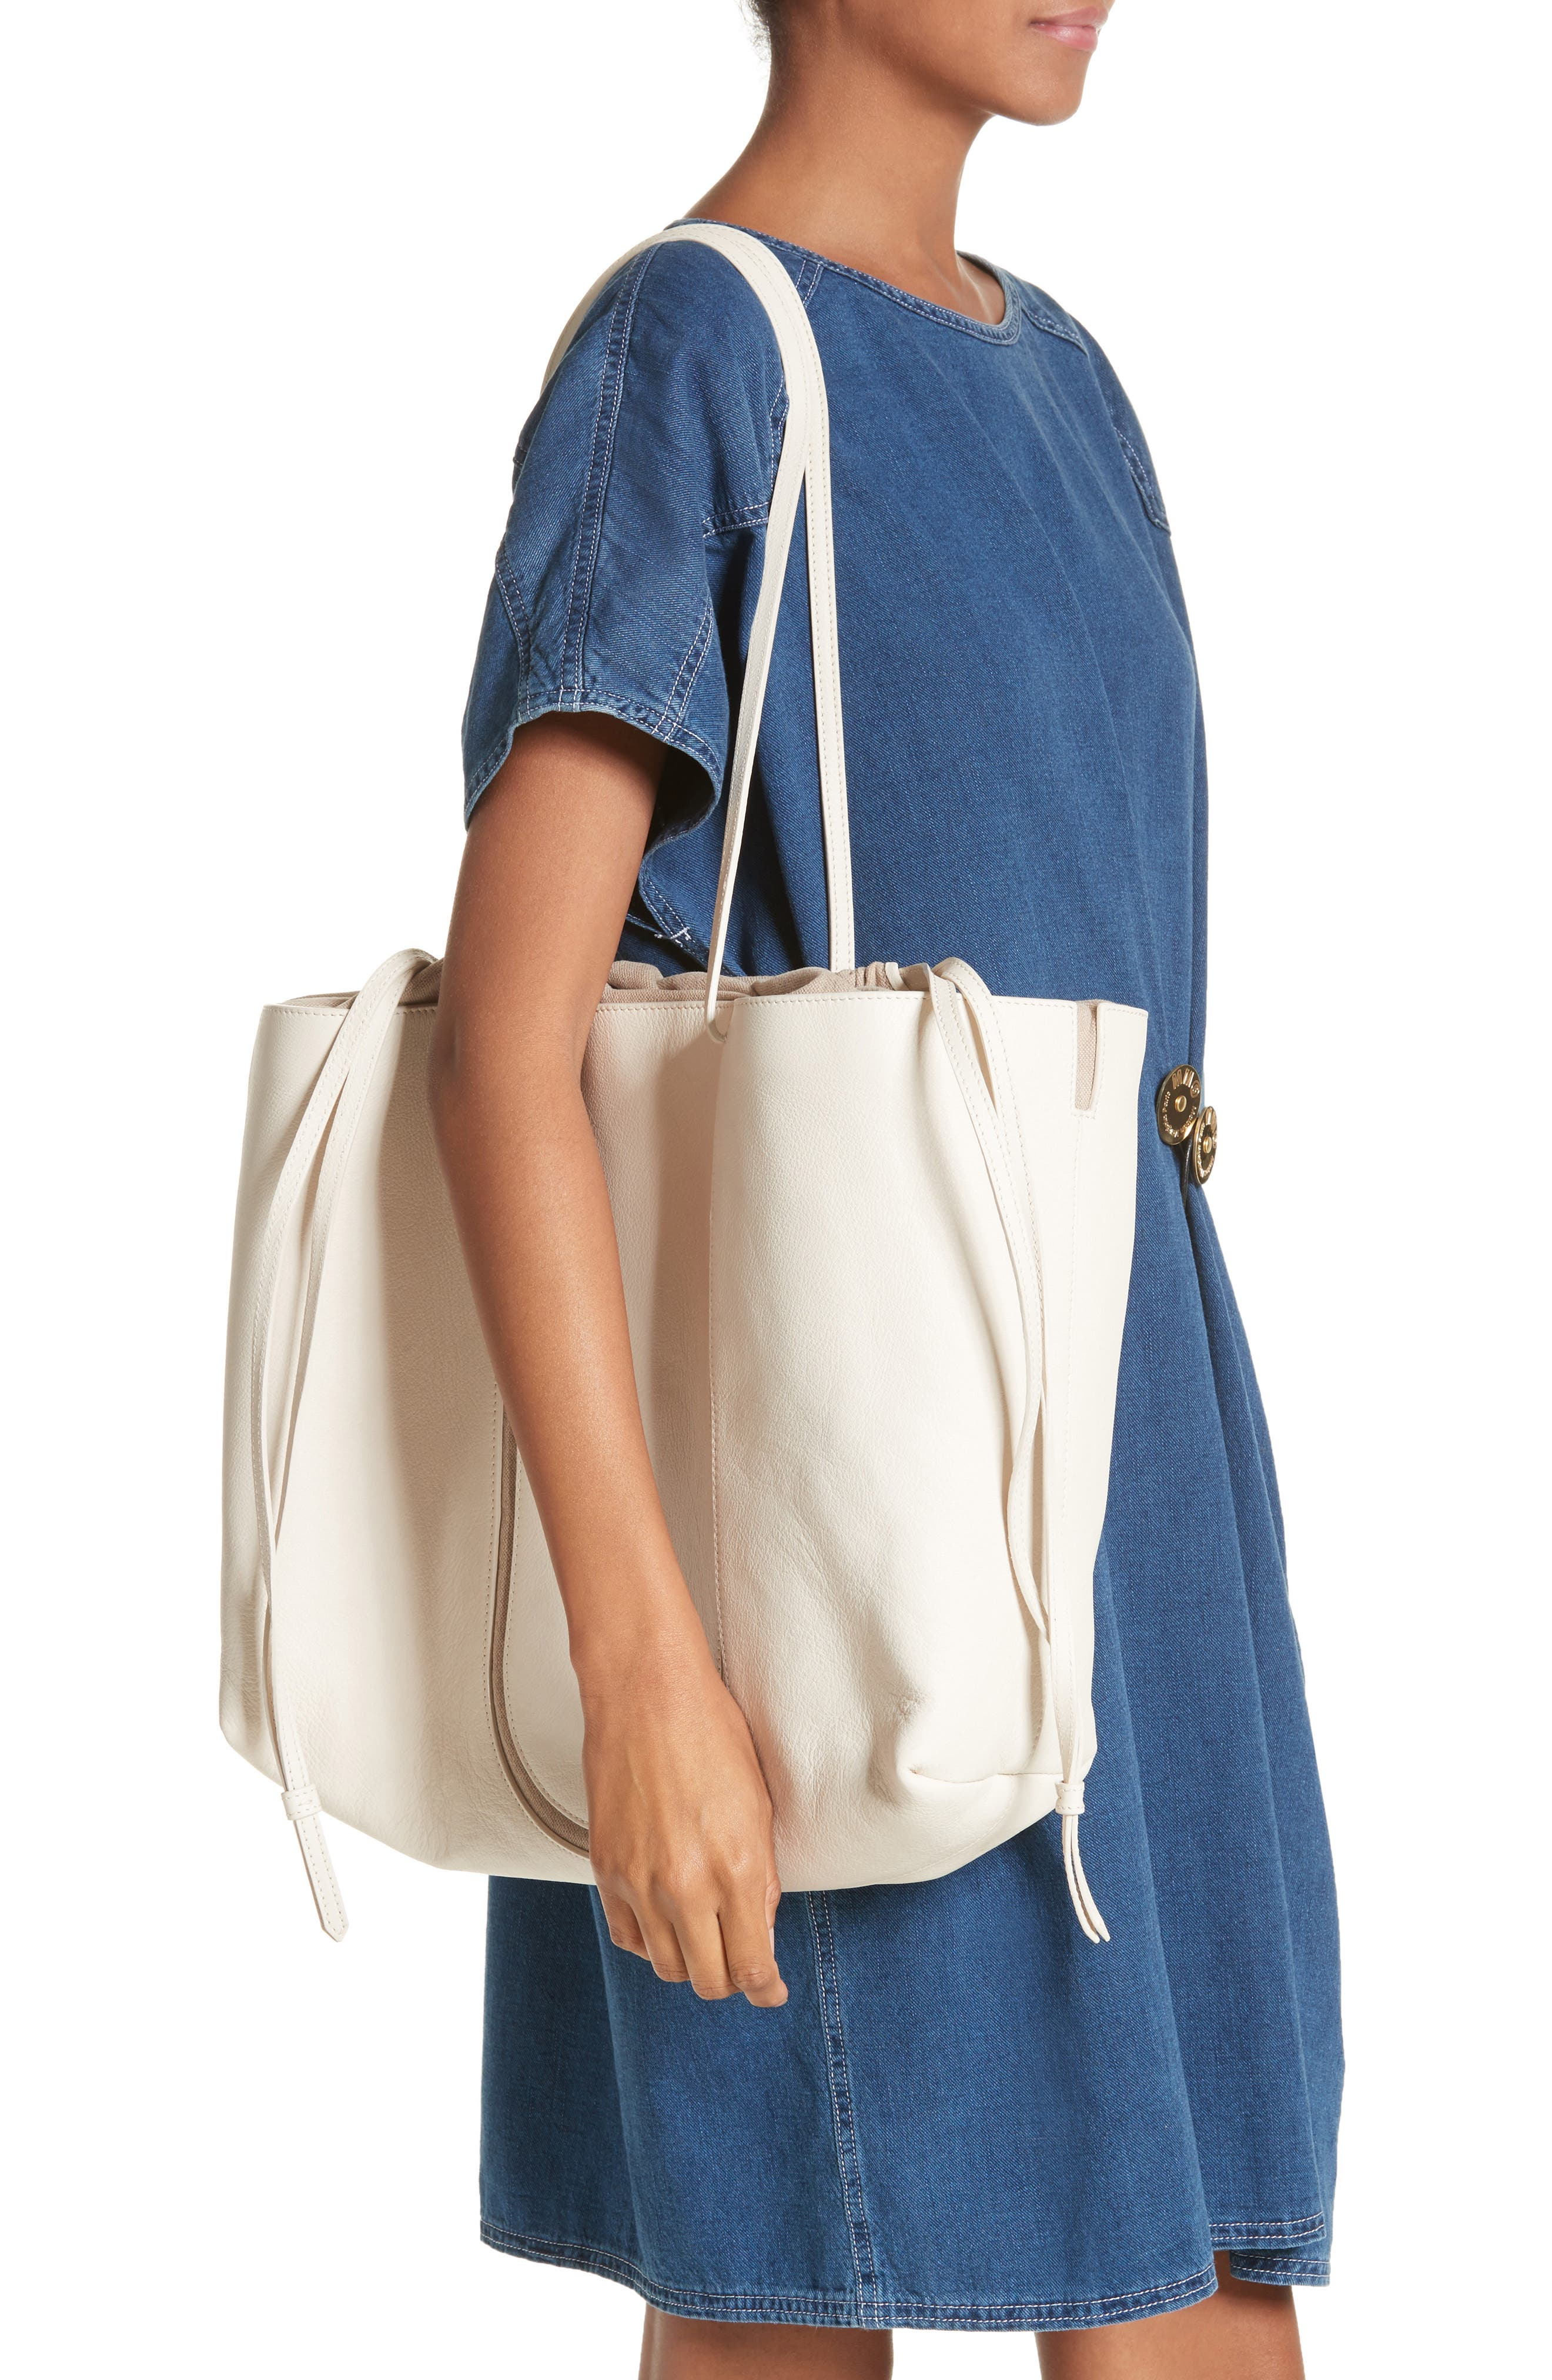 Calfskin Leather Tote,                             Alternate thumbnail 2, color,                             274